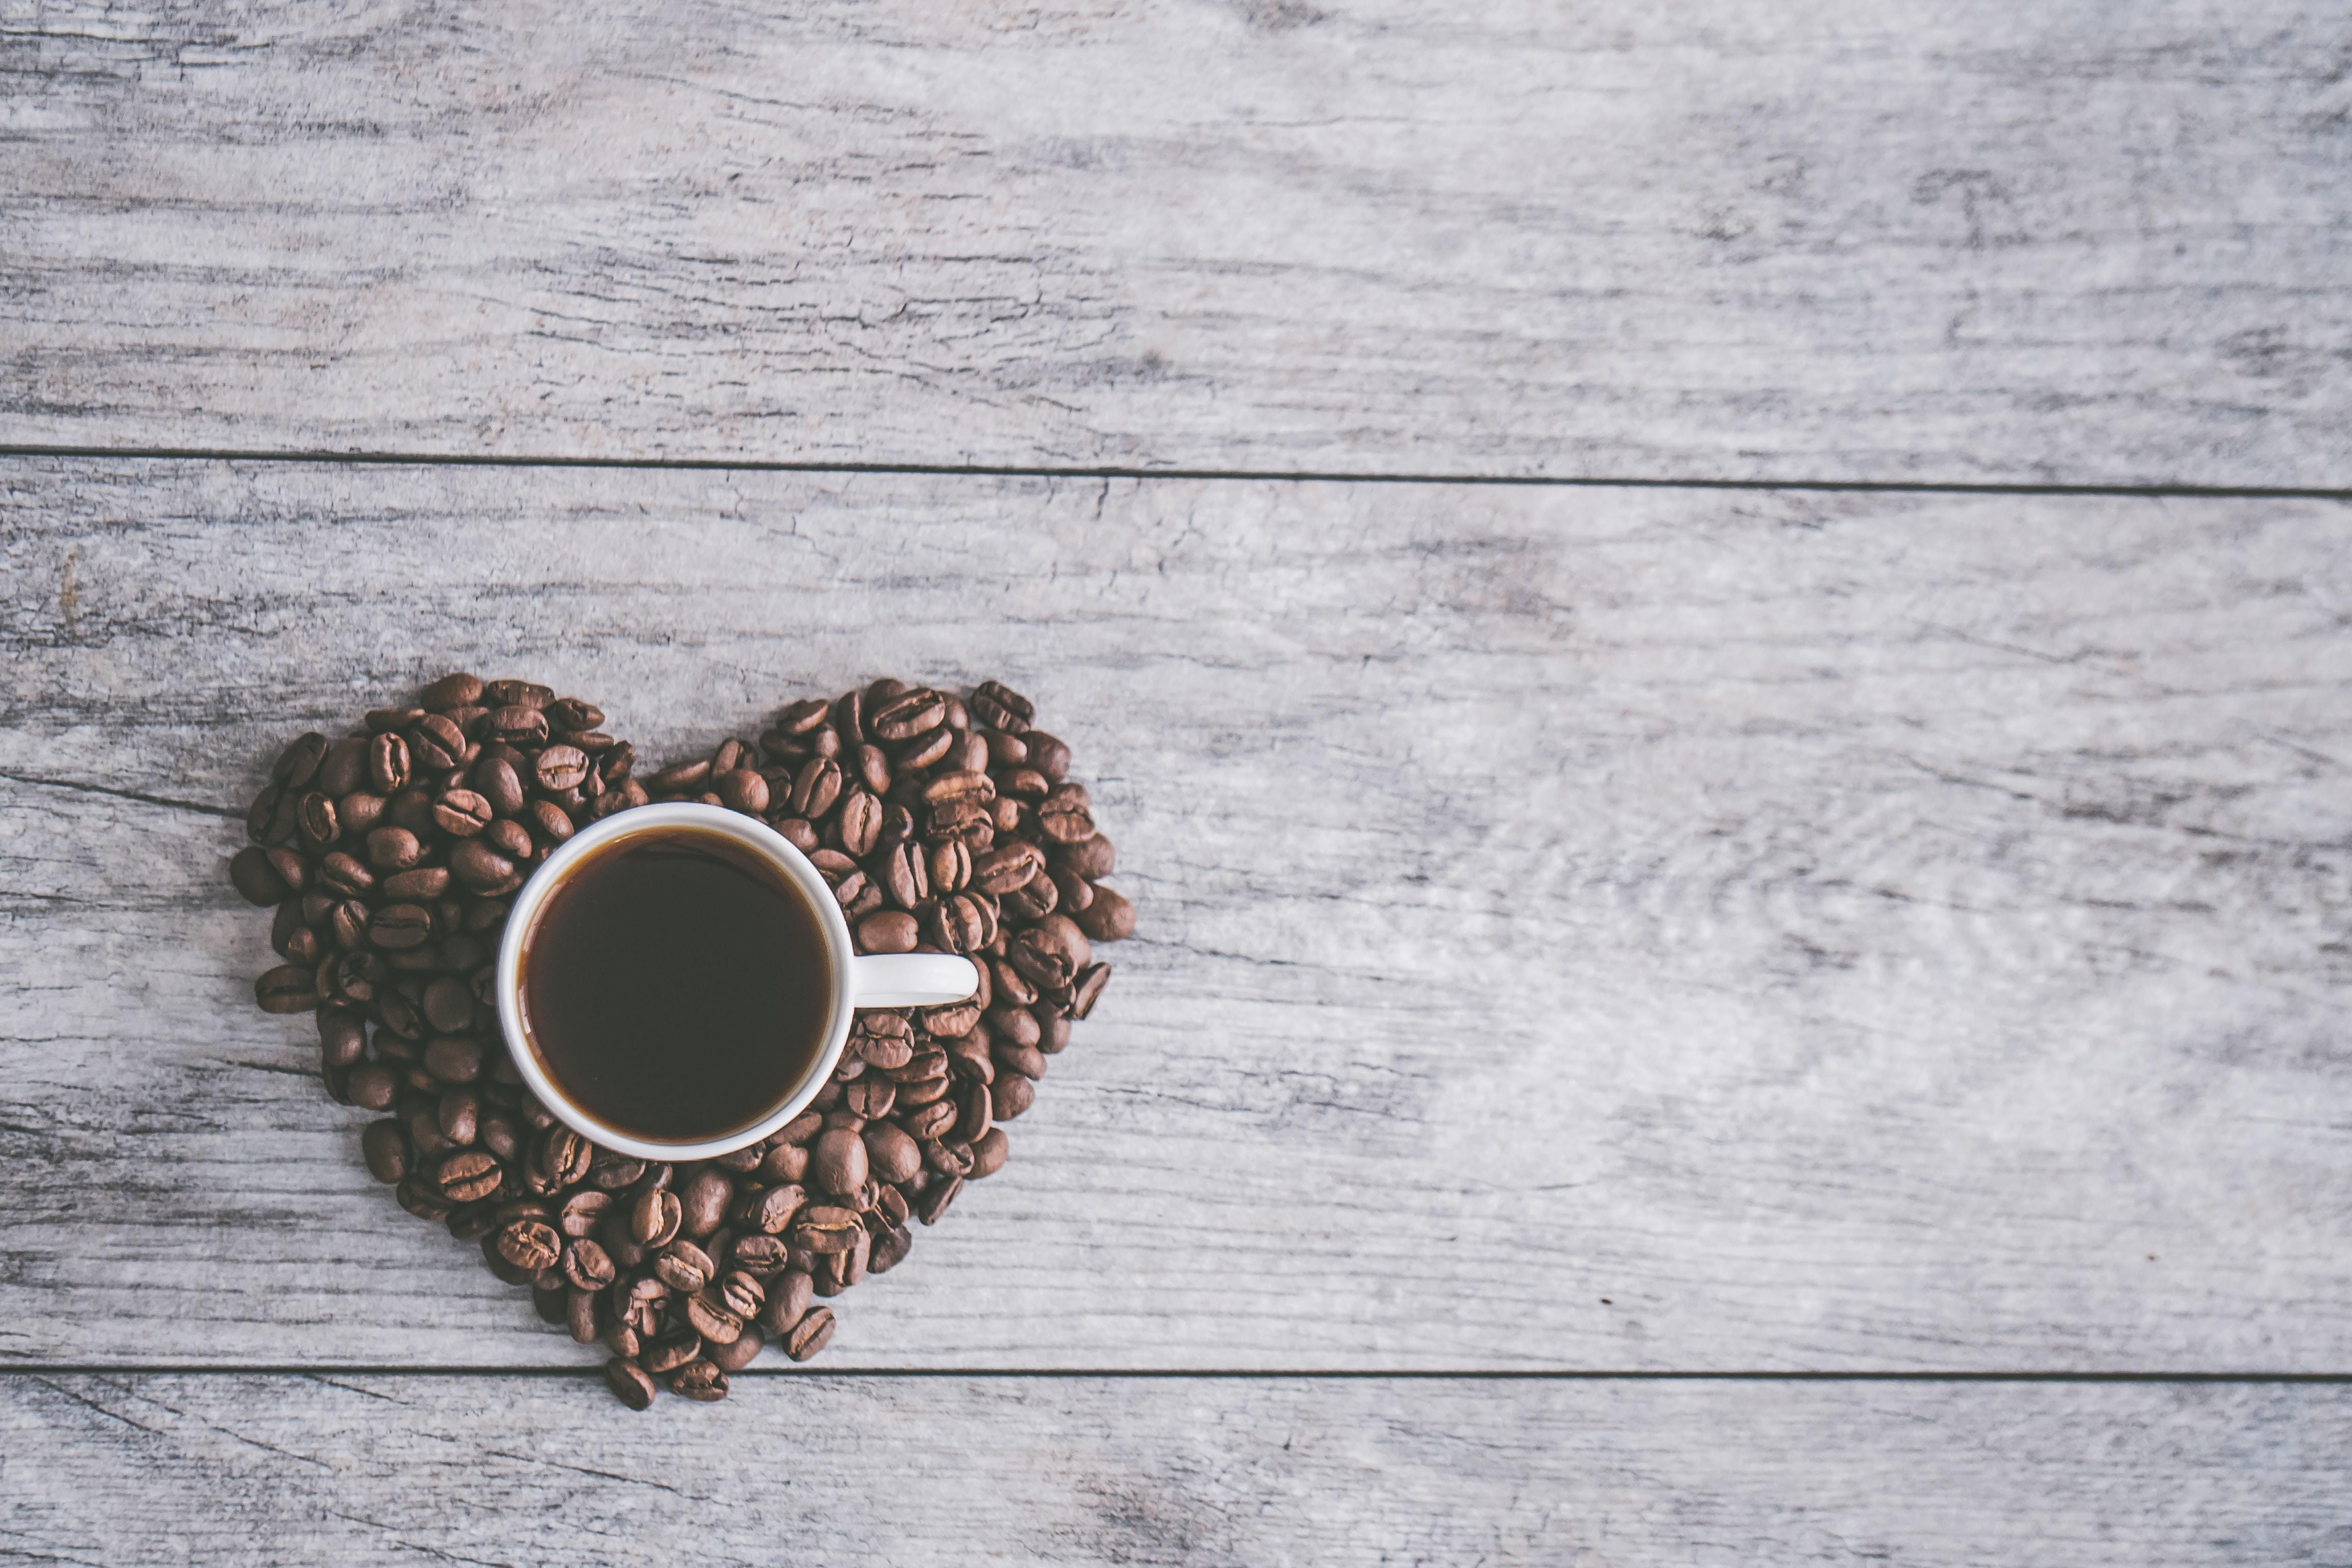 Birds eye photo of a cup of coffee on top of a heart made of coffee beans, on a wooden table.